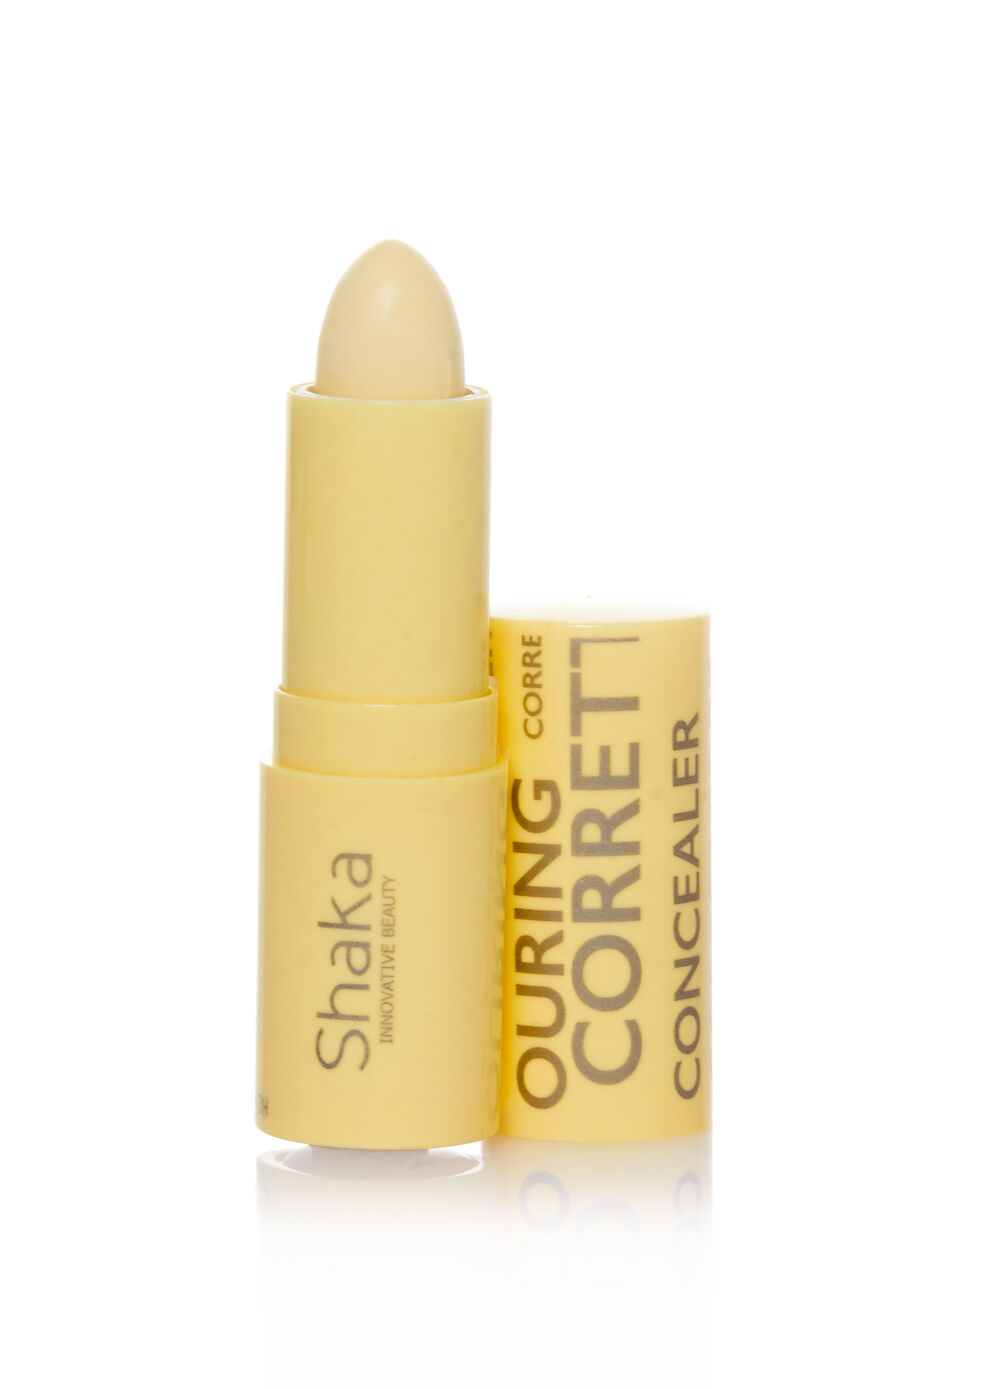 Discoloured facial concealer